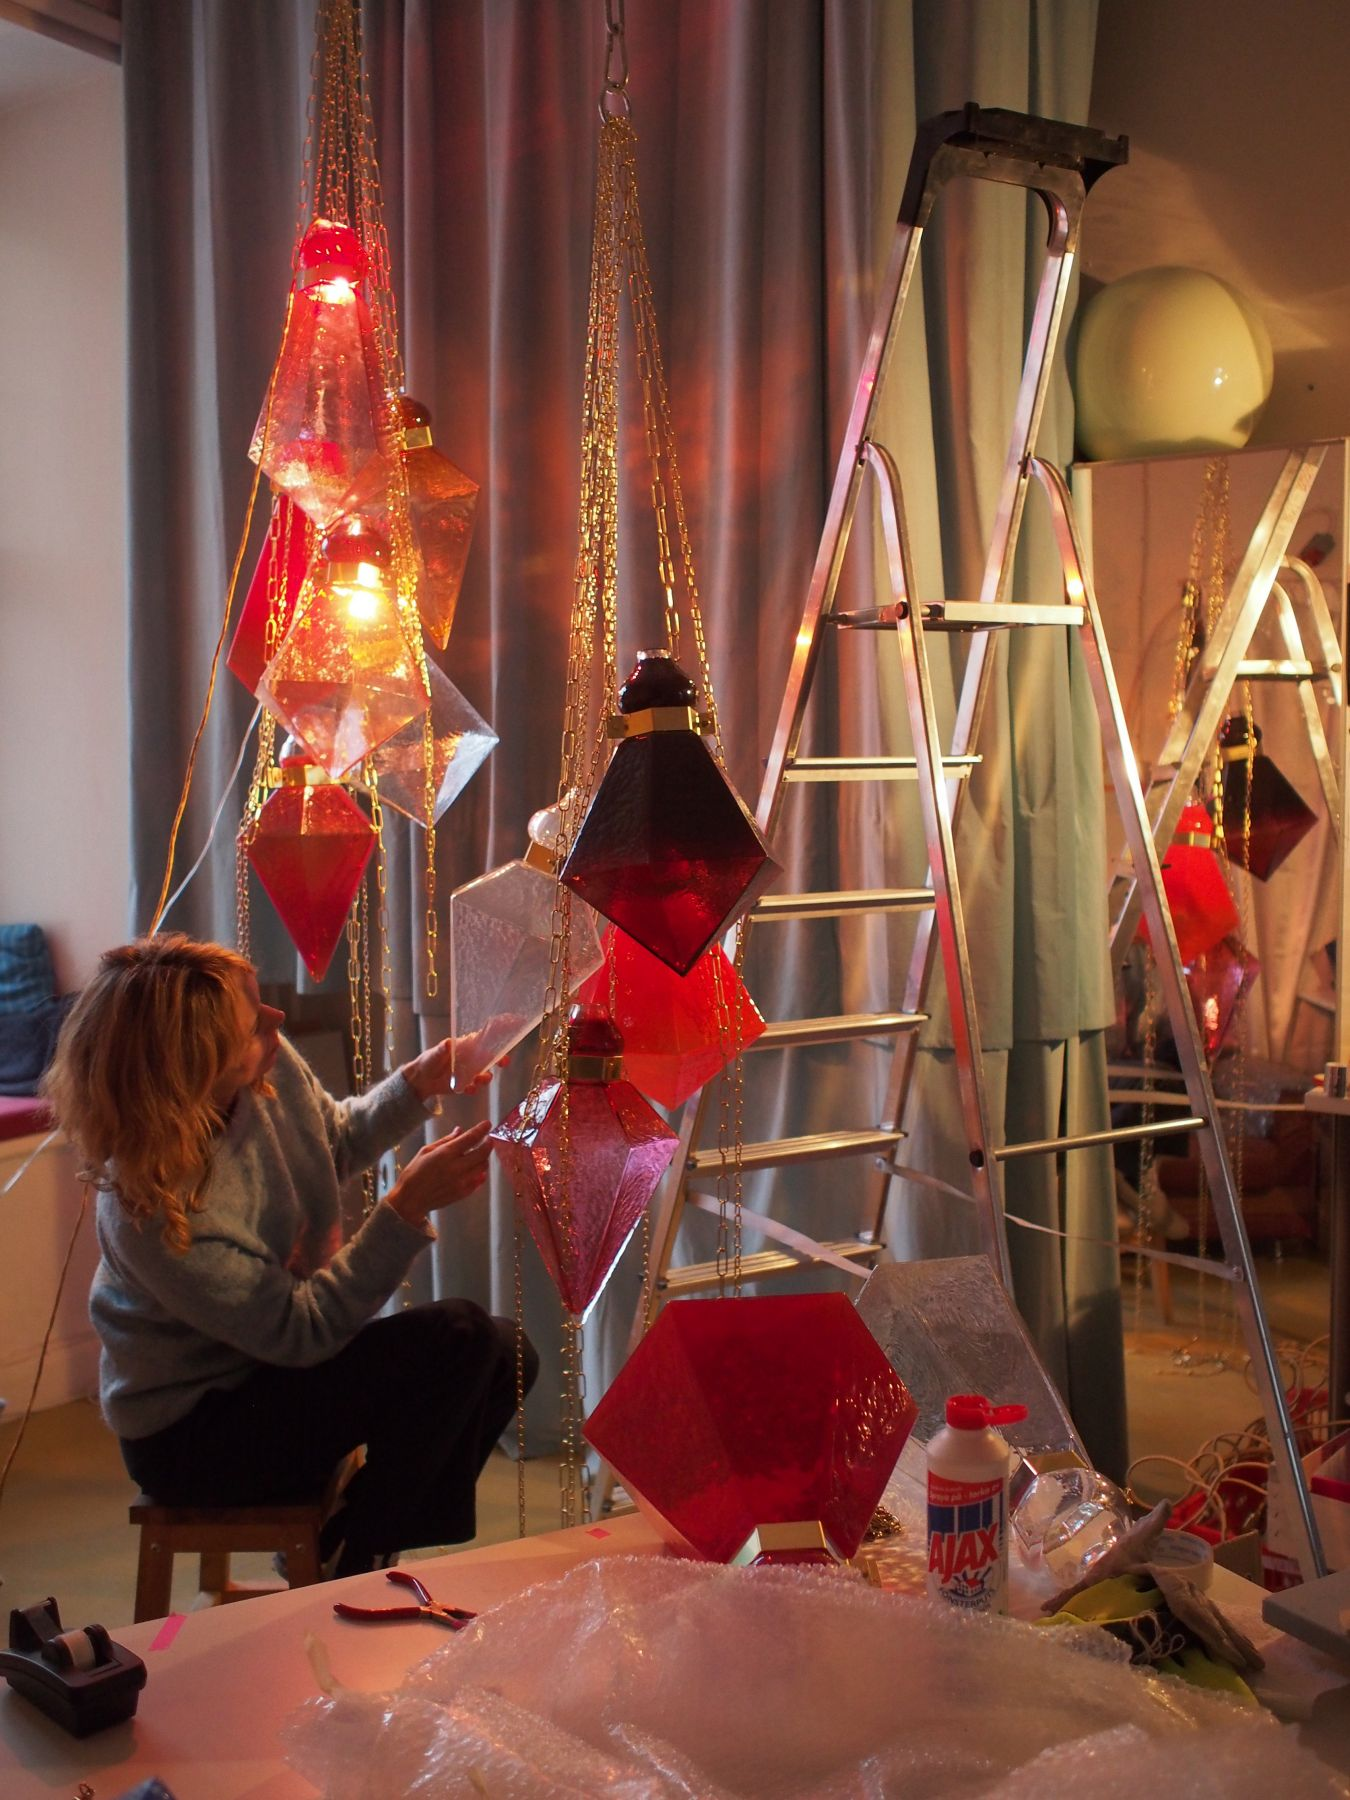 Frida Fjellman working on the pieces for her solo installation at Design Miami 2016.